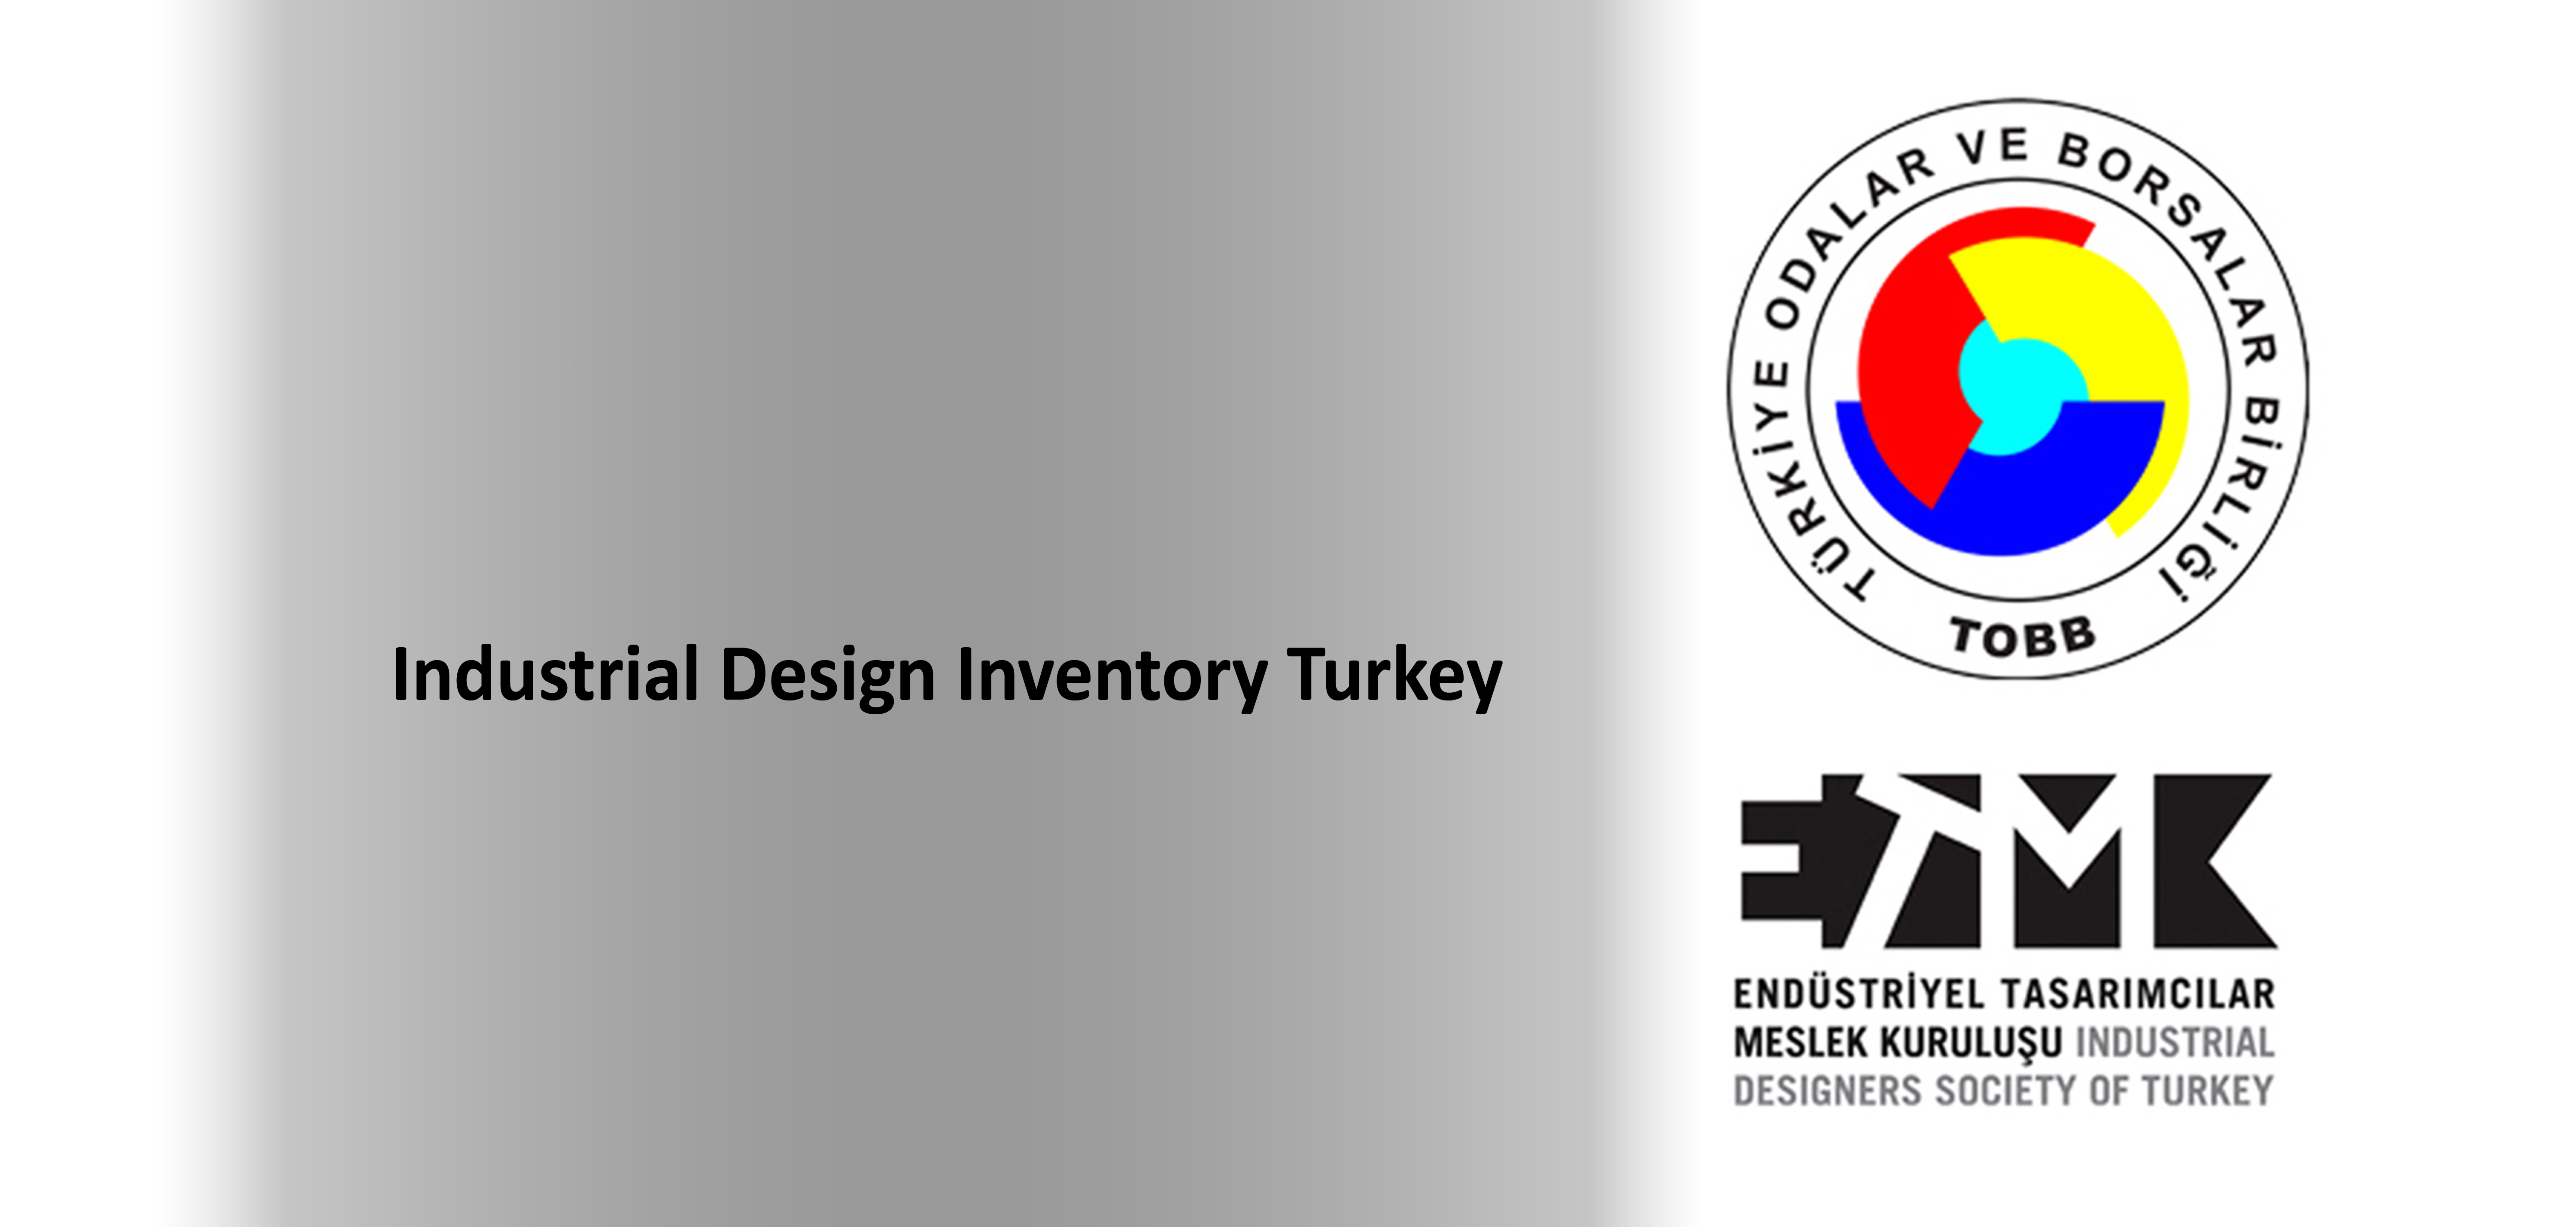 Industrial Design Inventory Turkey